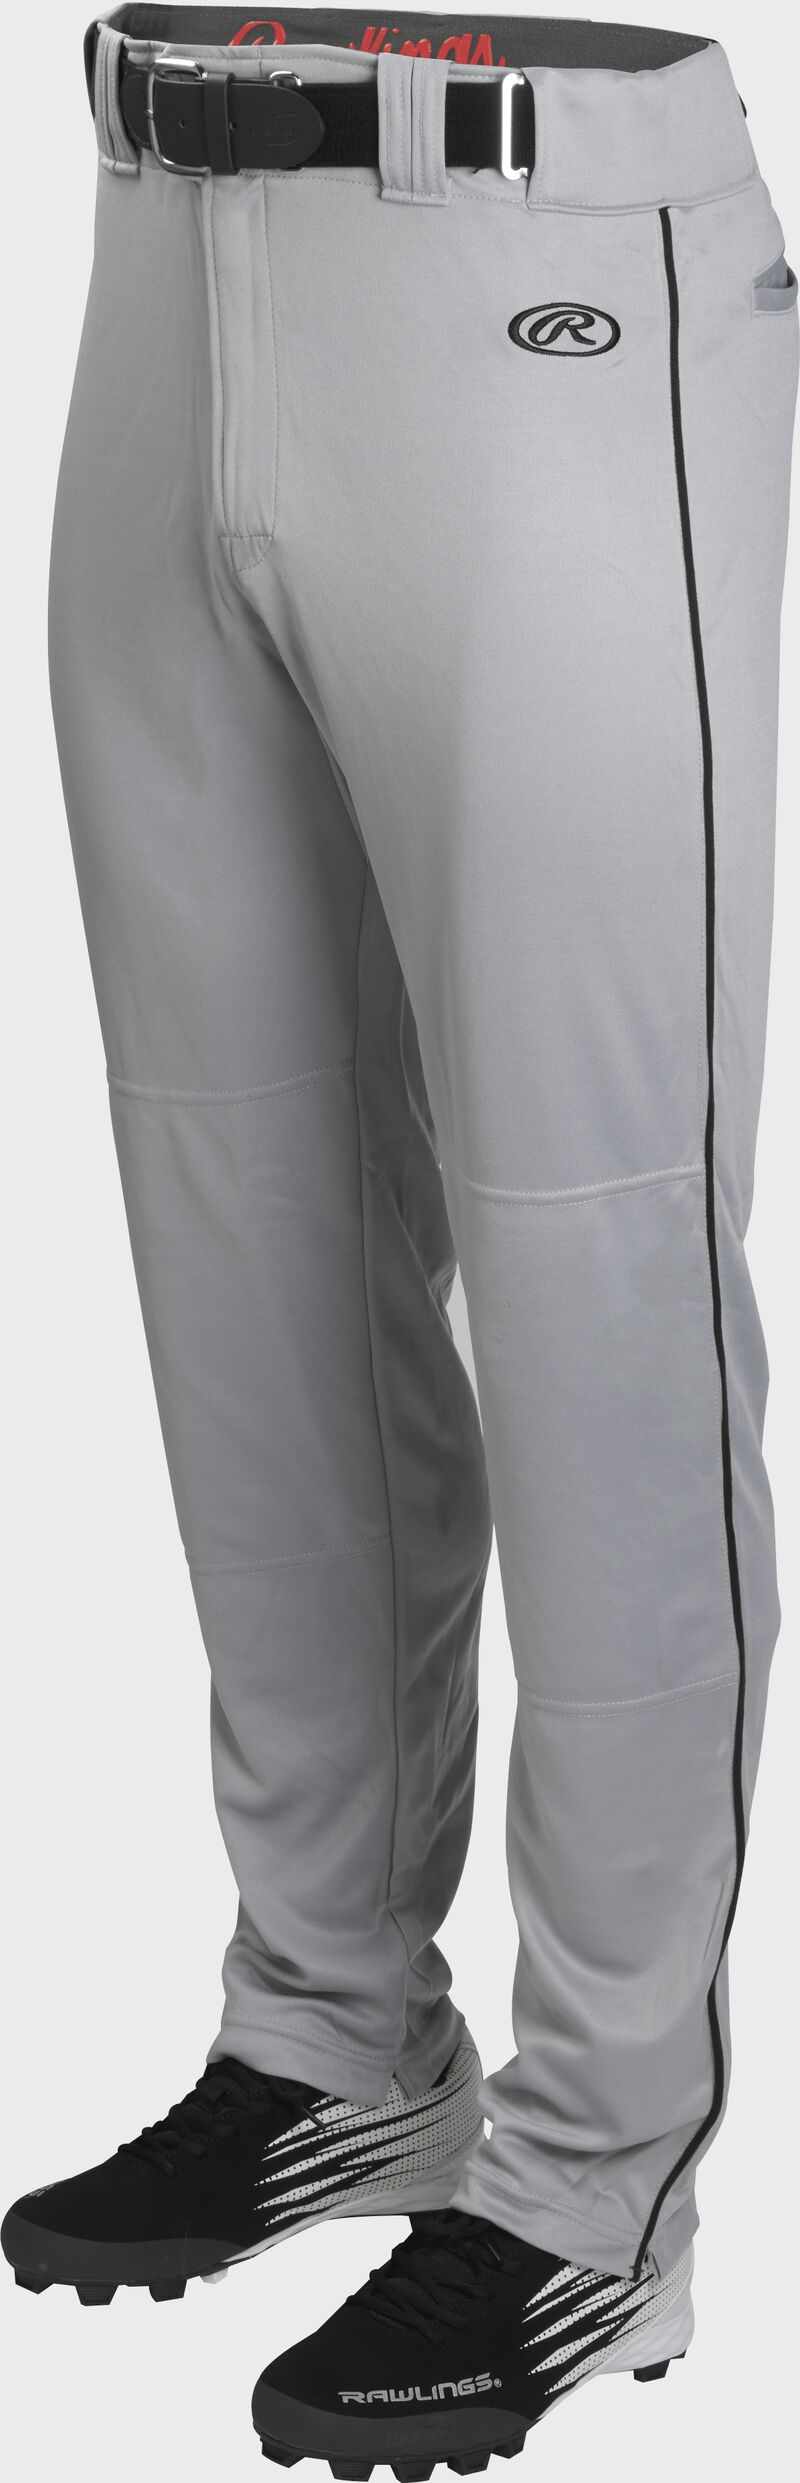 Front of Rawlings Blue Gray/Black Adult Launch Piped Semi-Relaxed Baseball Pant - SKU #LNCHSRP-BG/B